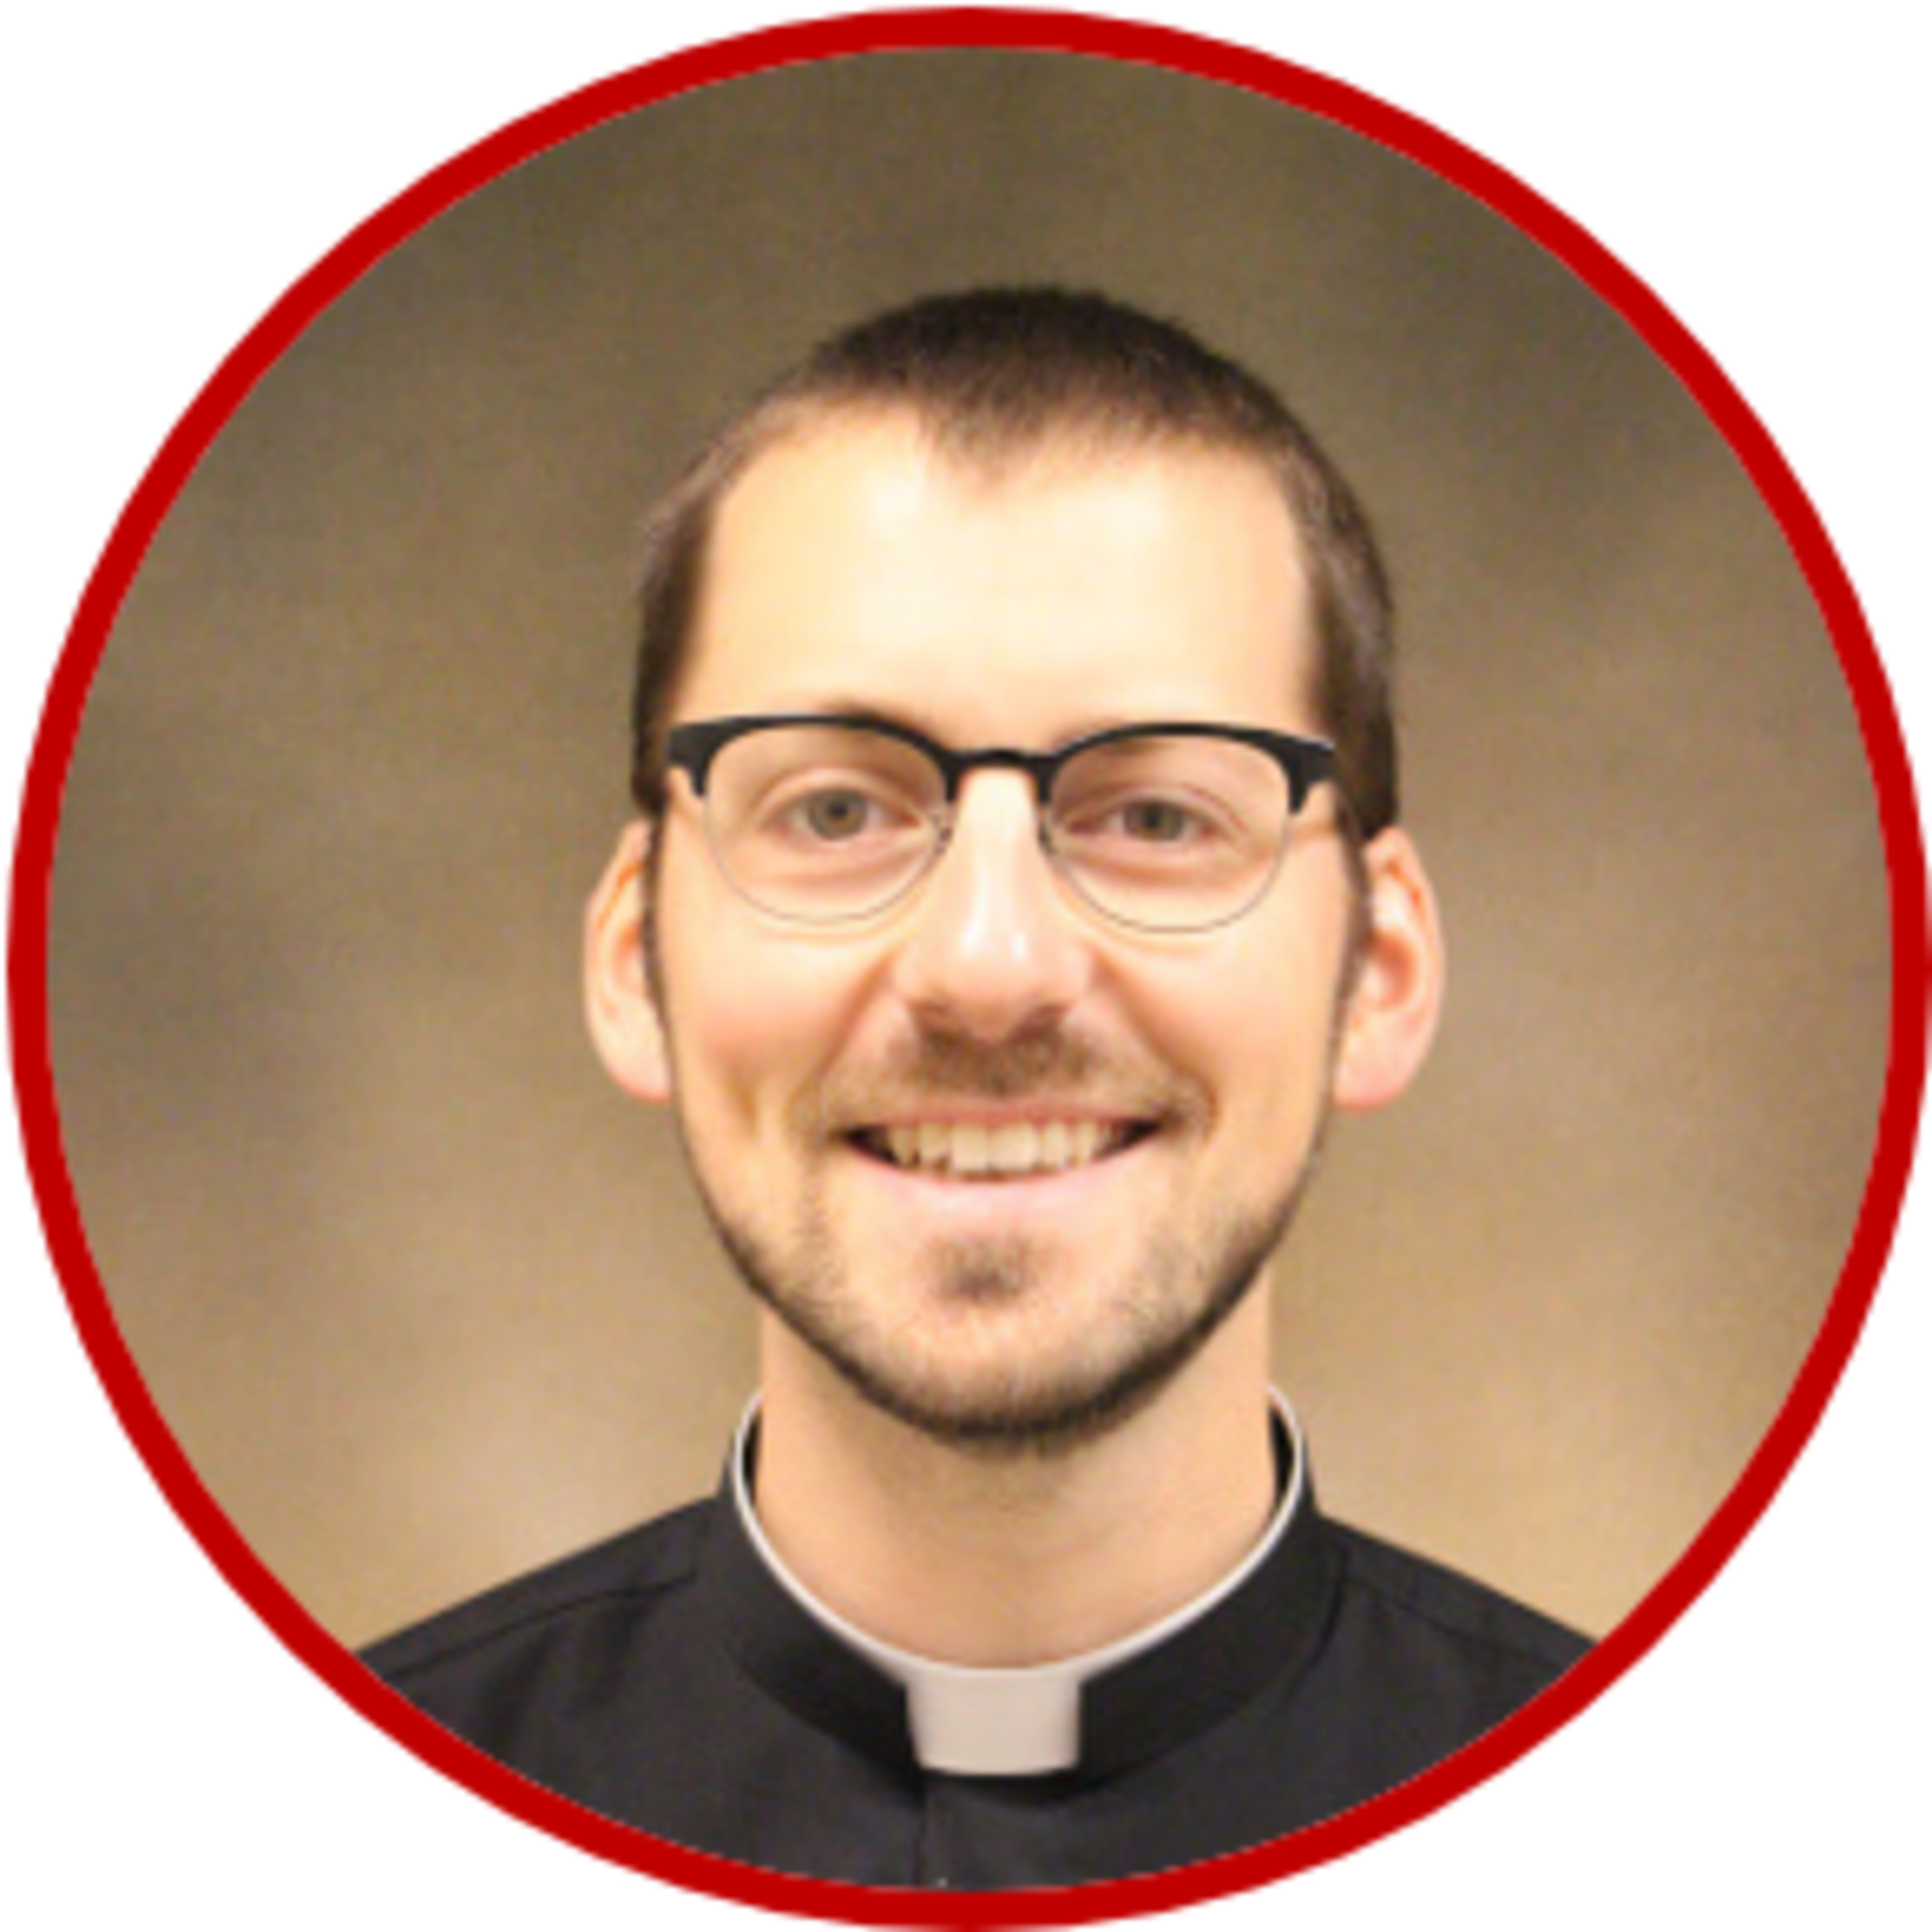 21st Sunday in ordinary Time: Fr. Christian DeCarlo